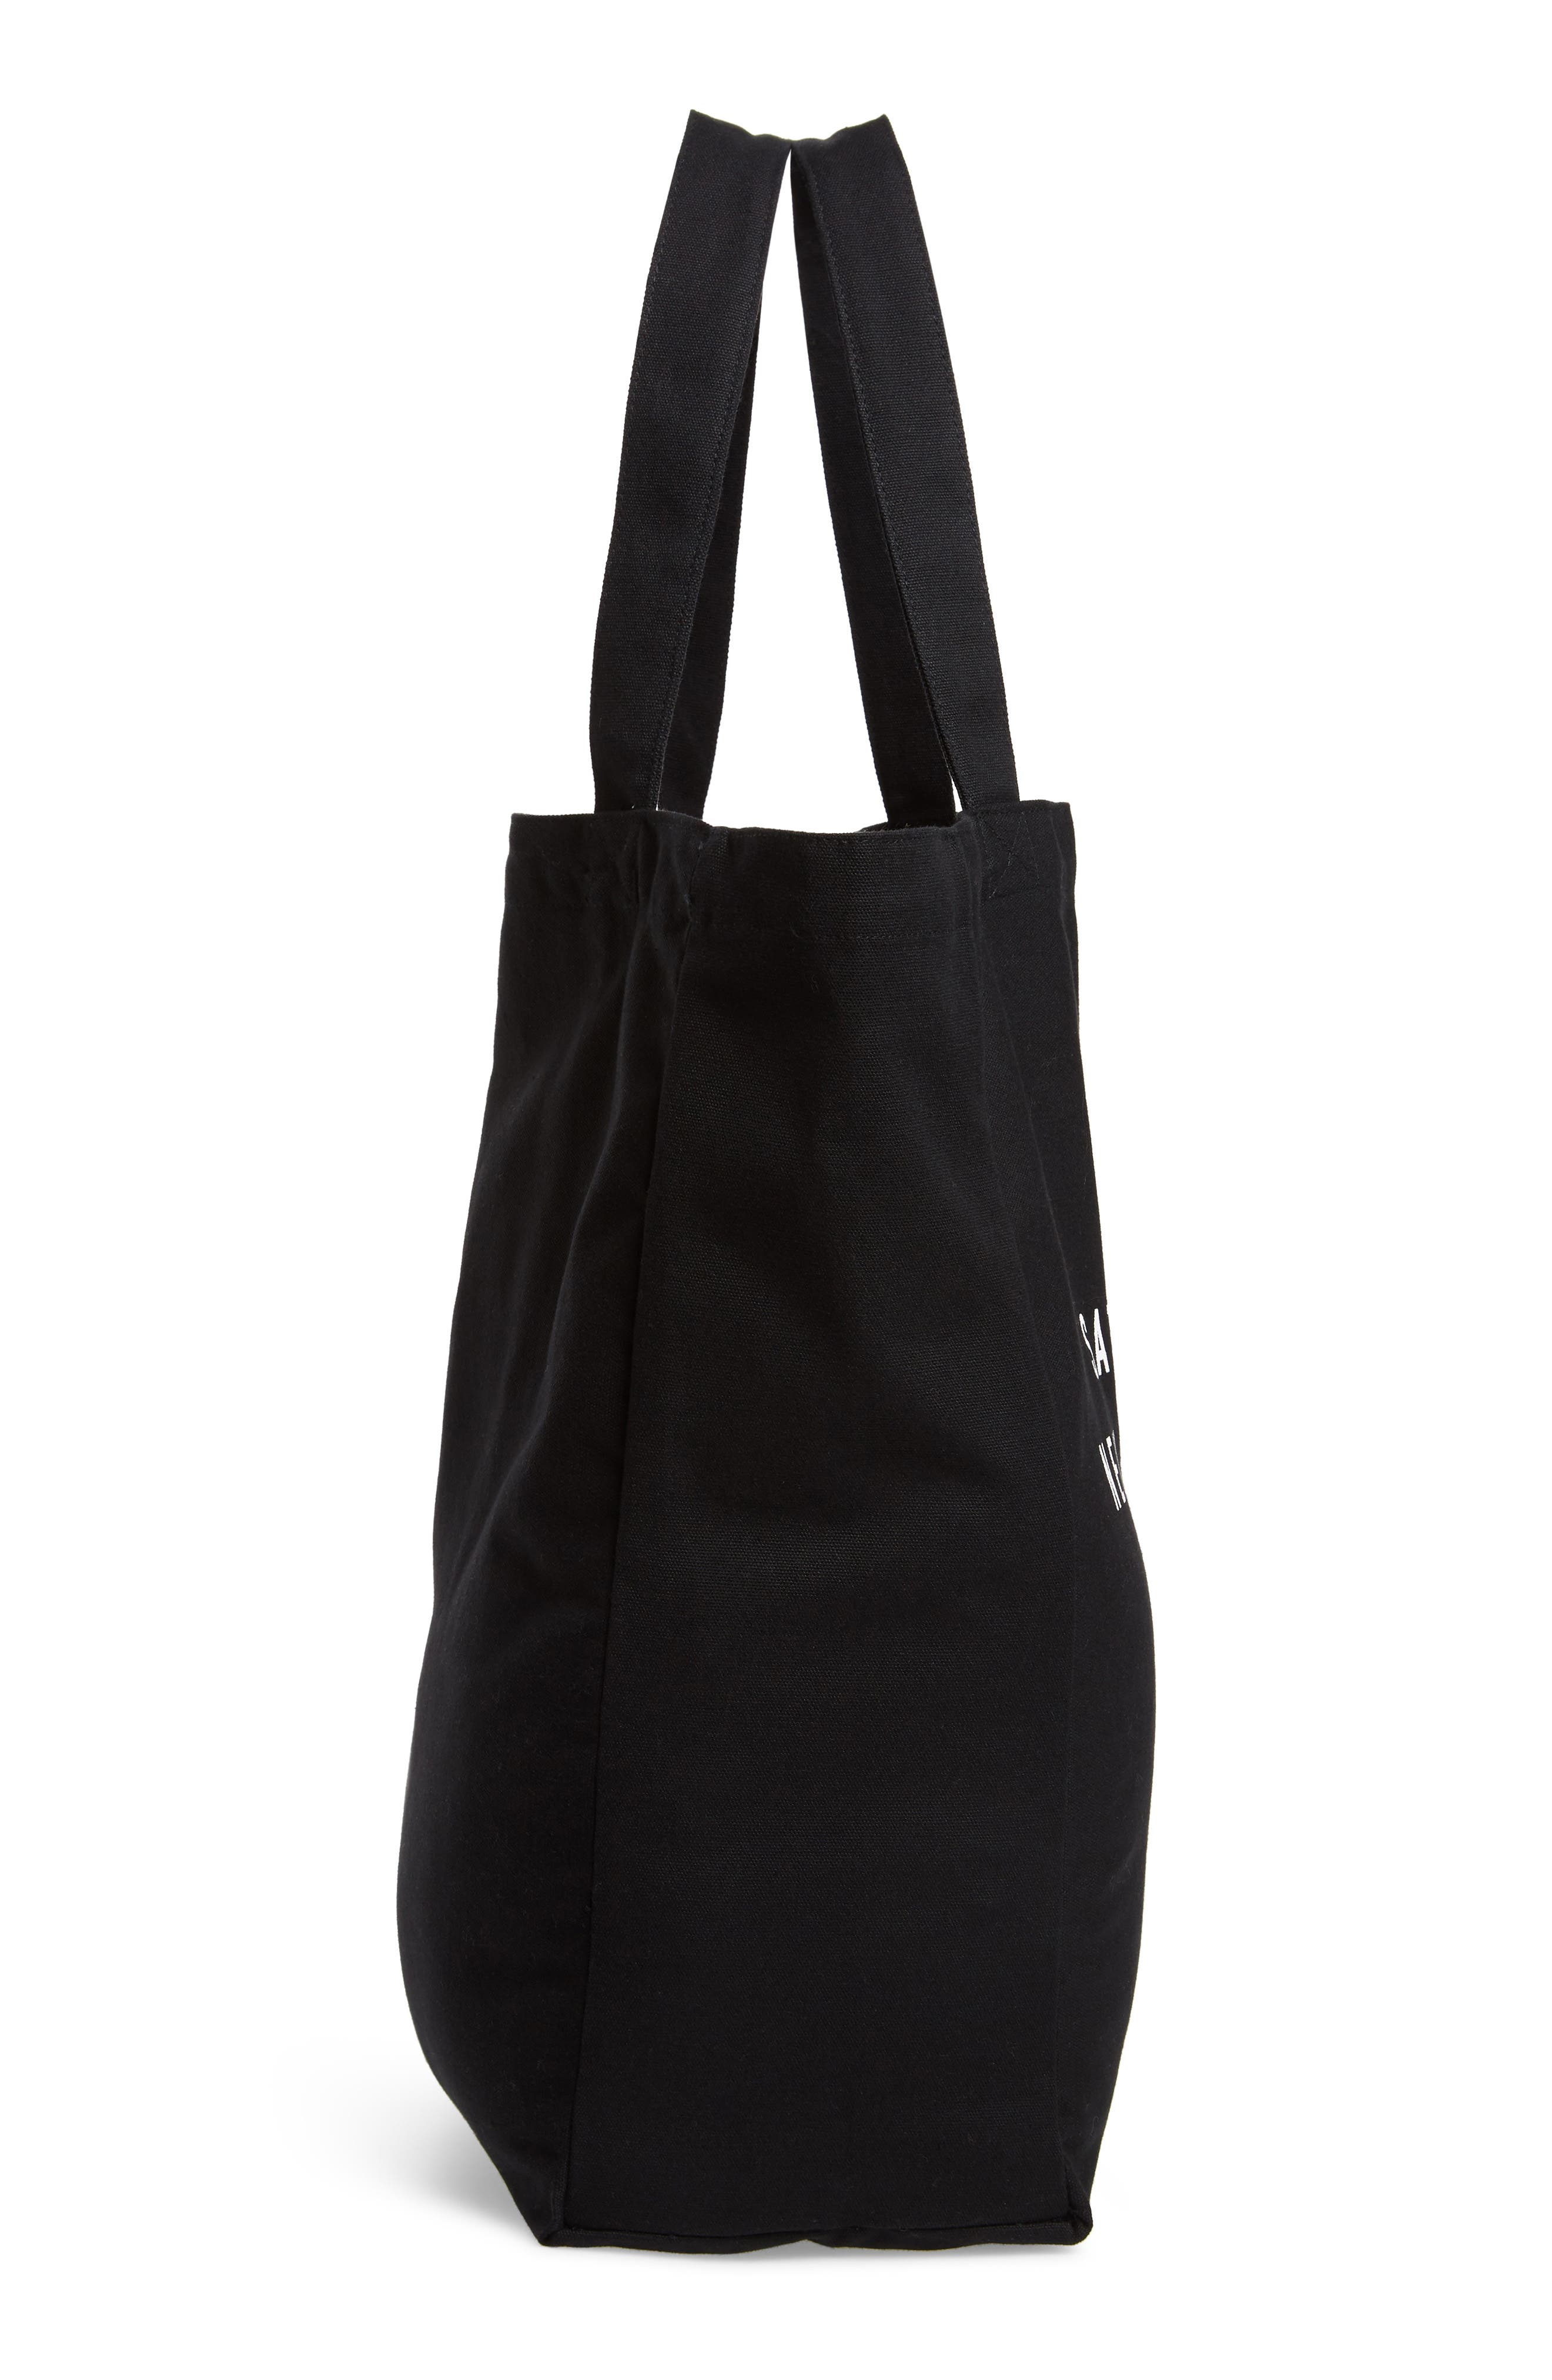 Established USA Tote Bag,                             Alternate thumbnail 5, color,                             Black